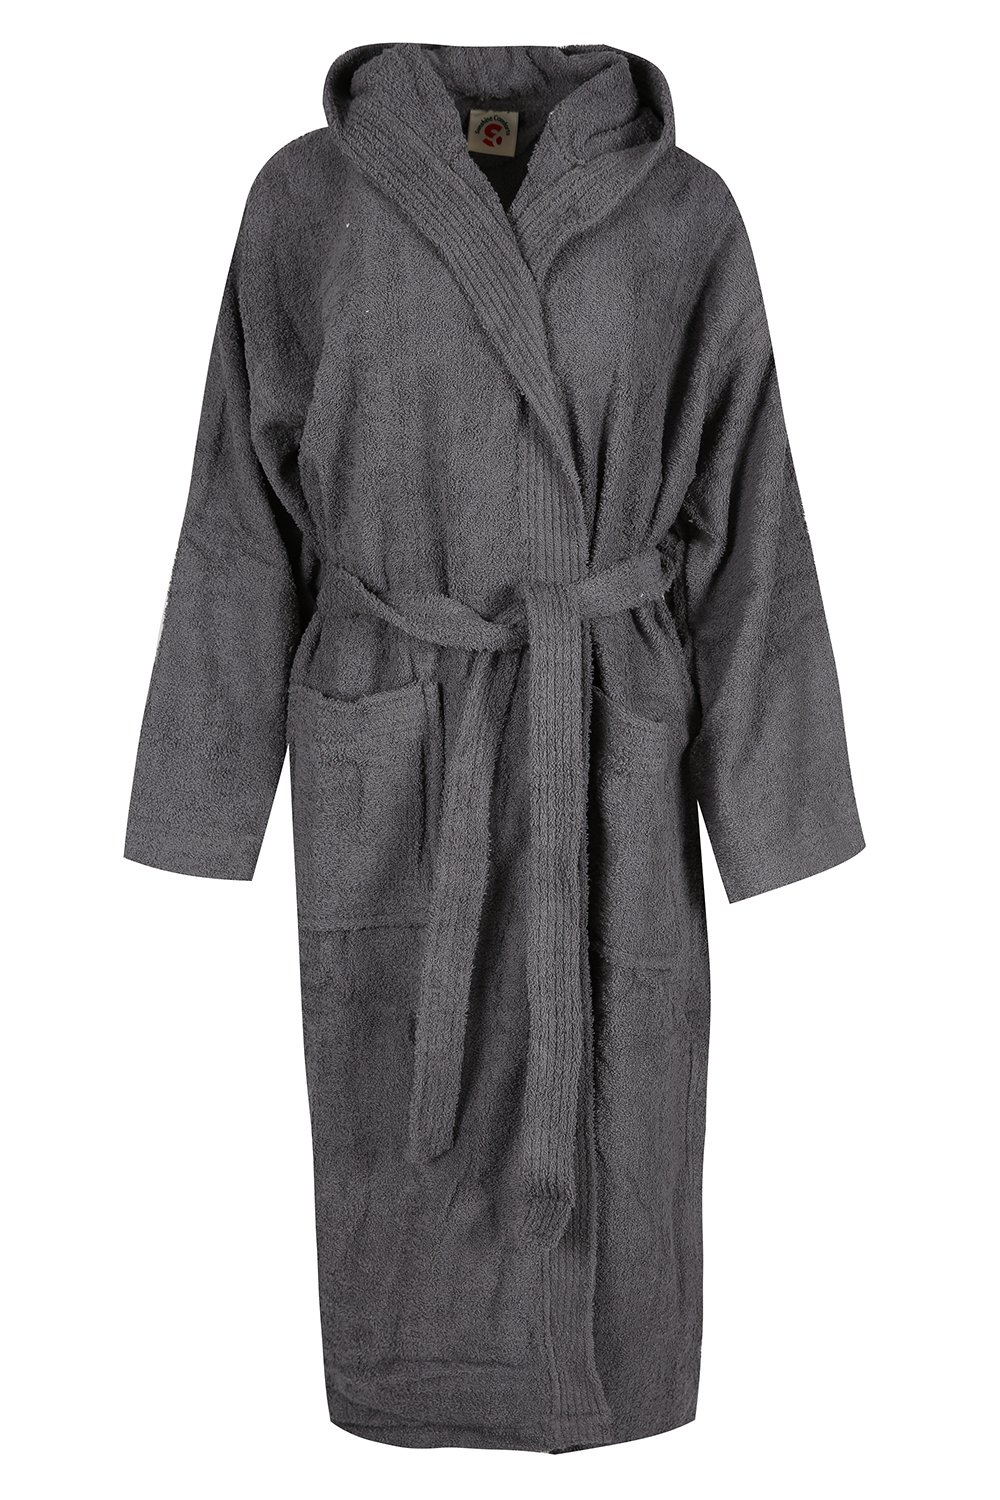 UNISEX Luxury Dressing Gown 100/% Egyptian Cotton Terry Towelling Hooded Bathrobe